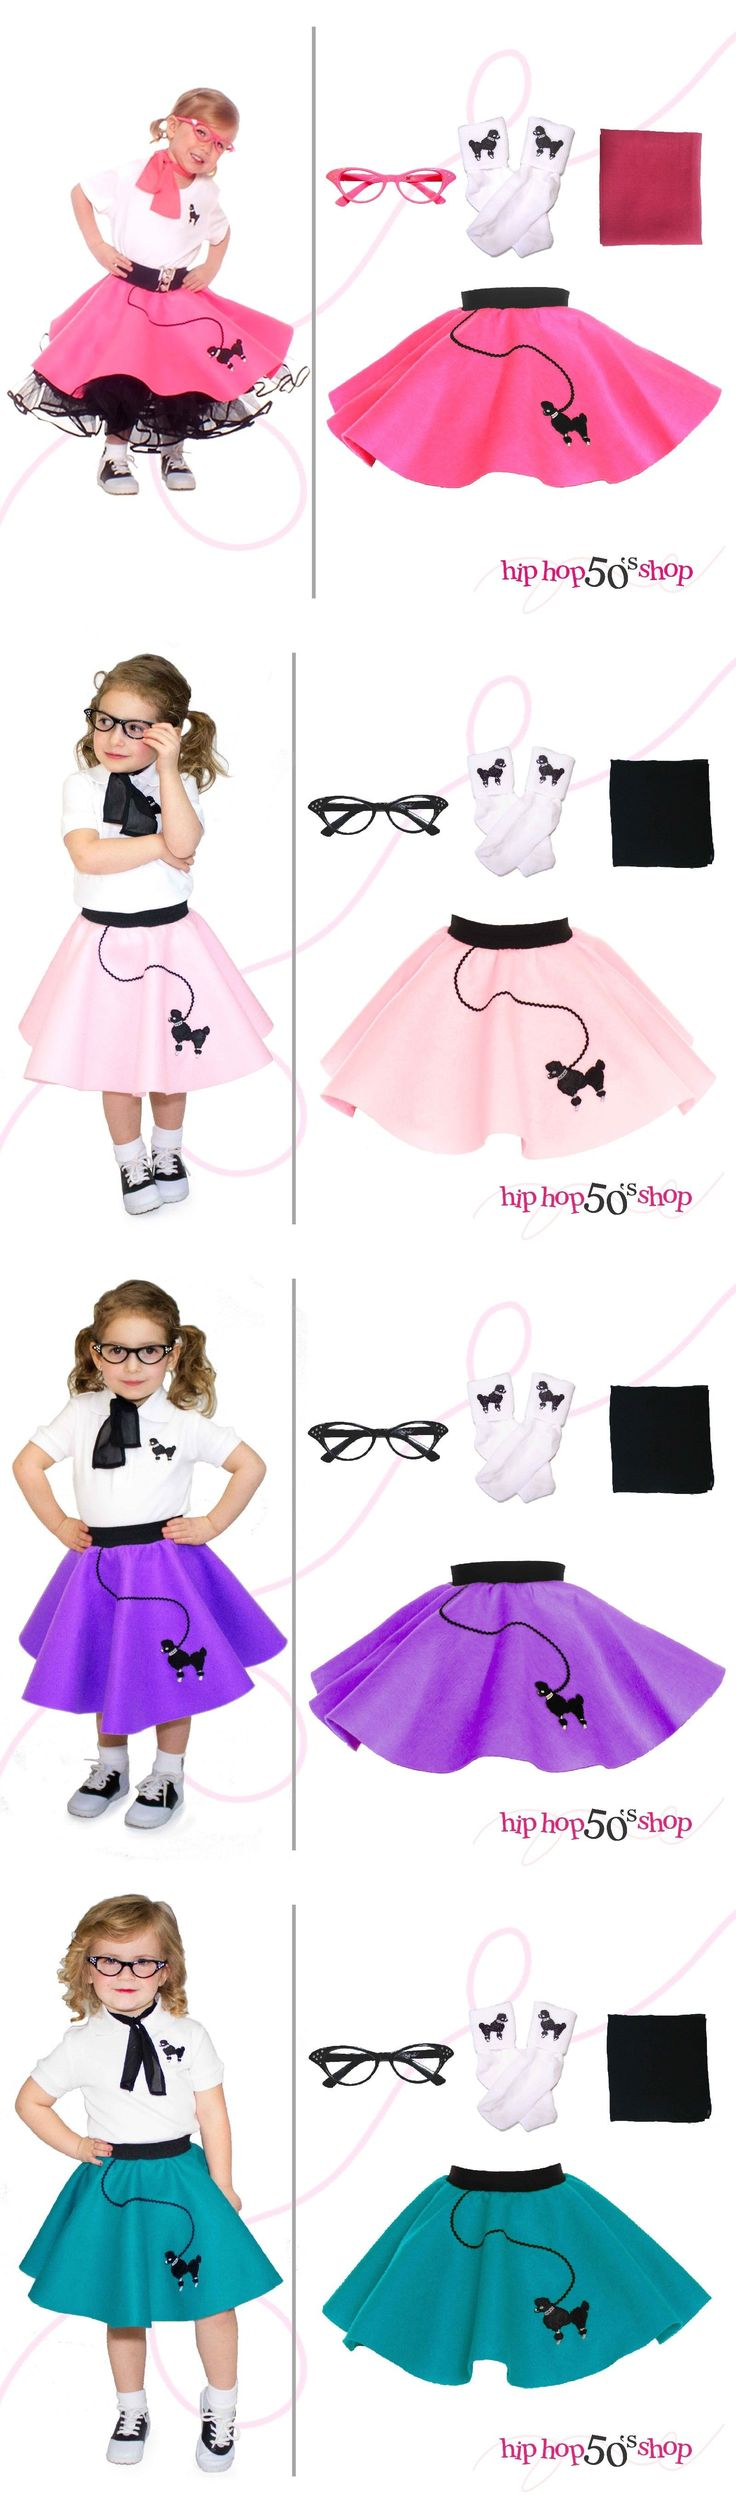 Halloween Costumes Kids: 4 Pc Toddler Poodle Skirt Outfit For Halloween Or Dance Costume Hip Hop 50S Shop -> BUY IT NOW ONLY: $32.99 on eBay!